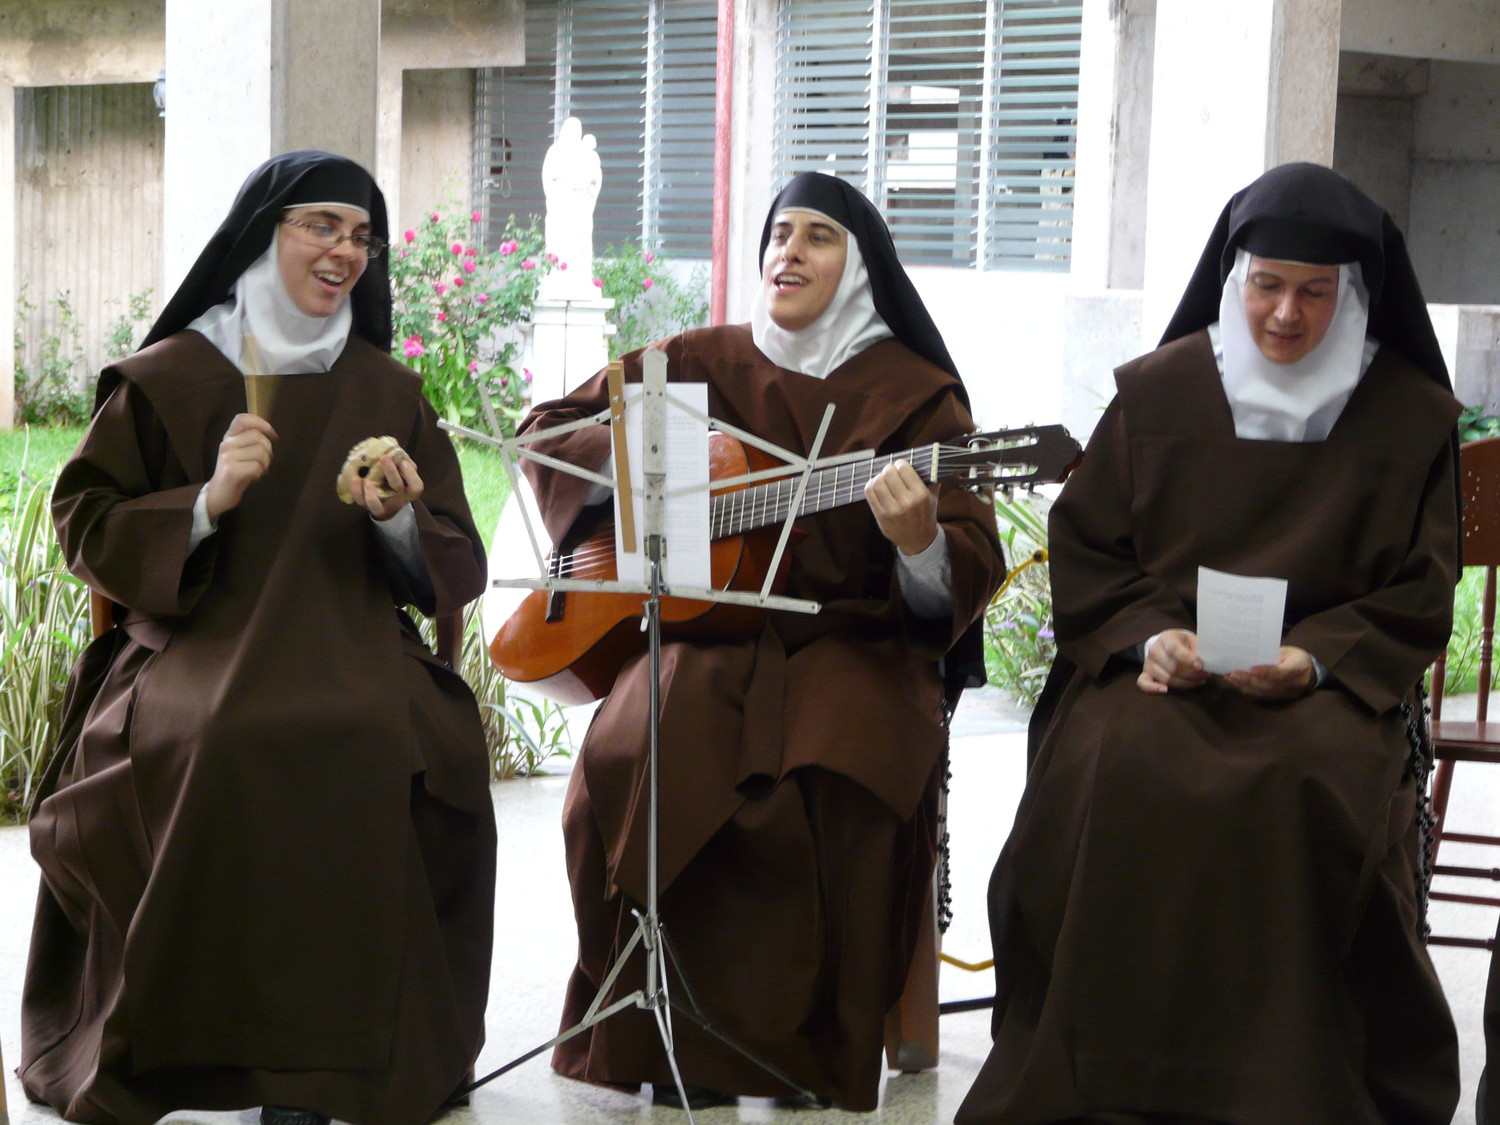 WELCOME—Carmelite Sisters perform a song welcoming San Juan Archbishop Roberto Gonzalez and Cardinal Dolan and the other visitors from New York to St. Joseph's Monastery in Trujillo Alto Oct. 30.